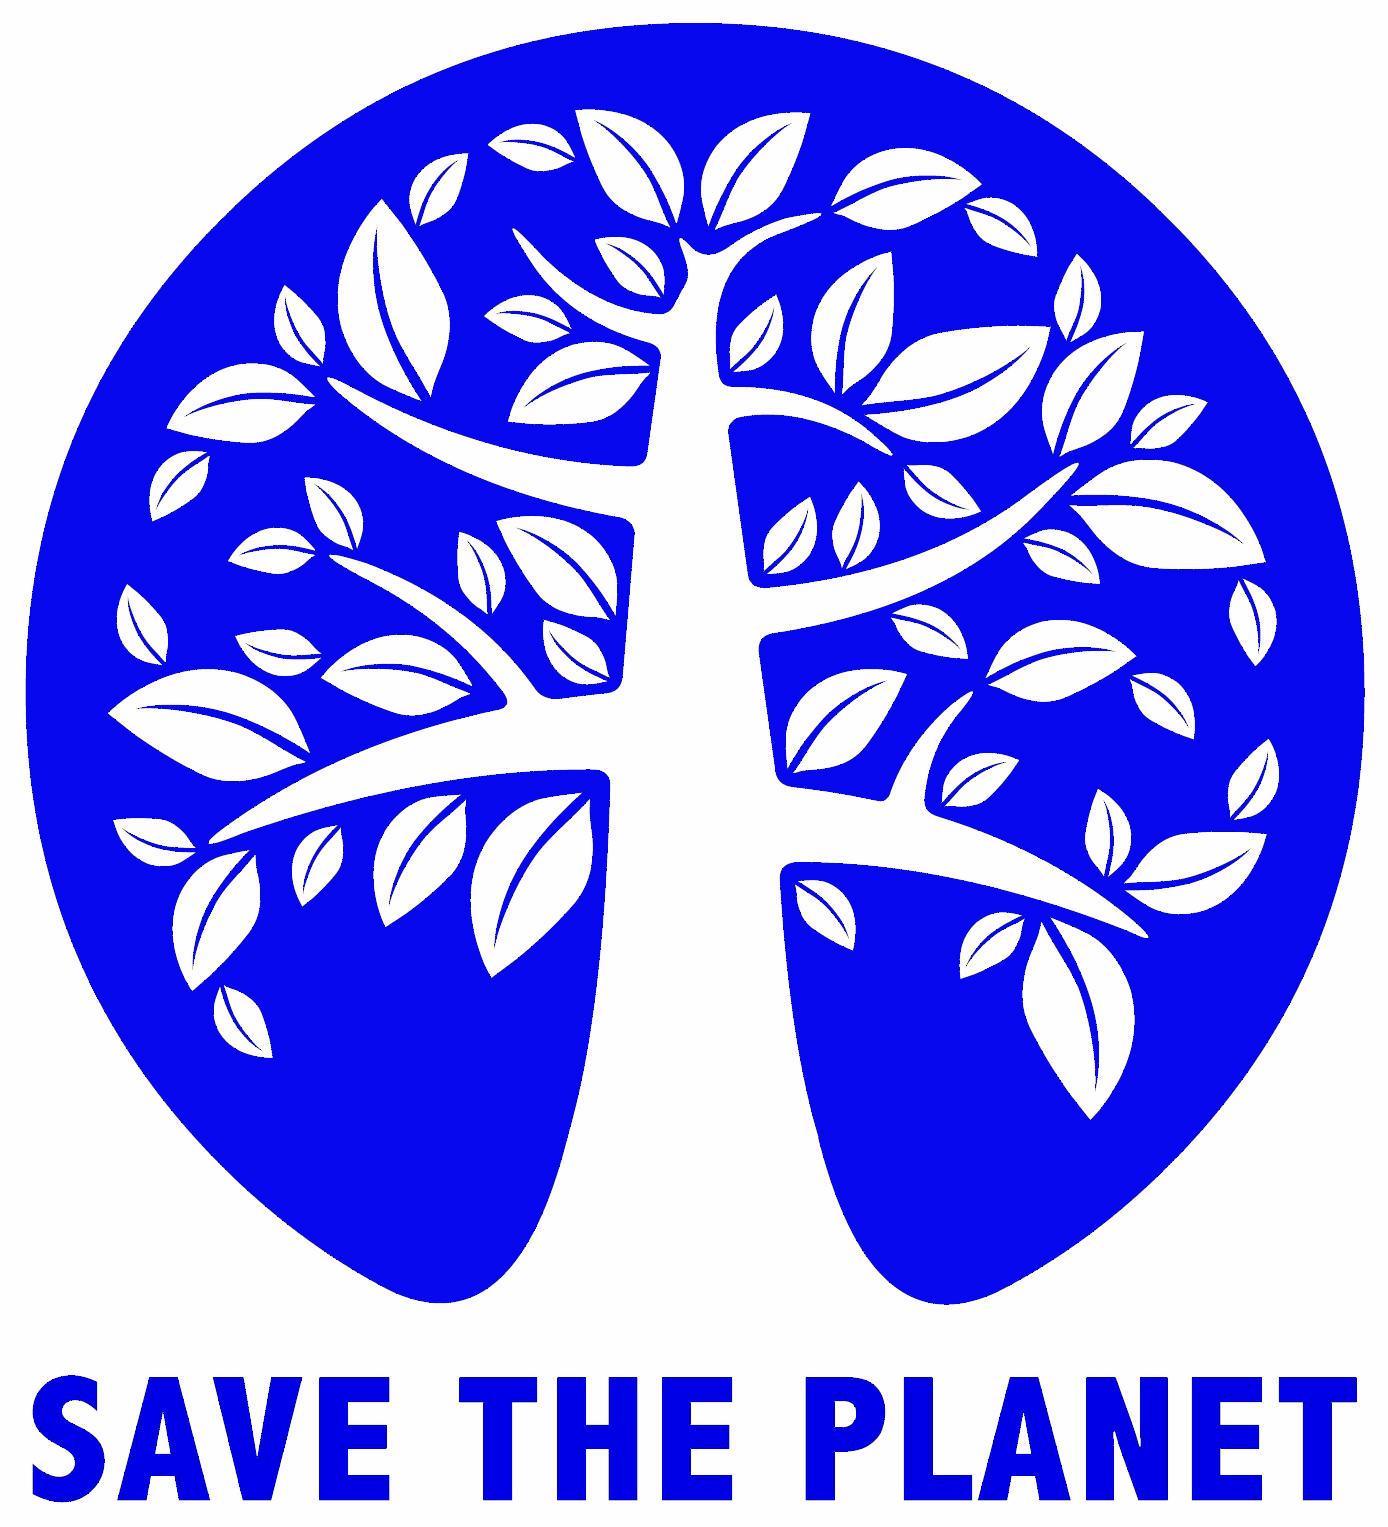 Save the Planet logo in bright light green. Features a white tree on a blue circle - i.e. the planet earth, the tree symbolising life